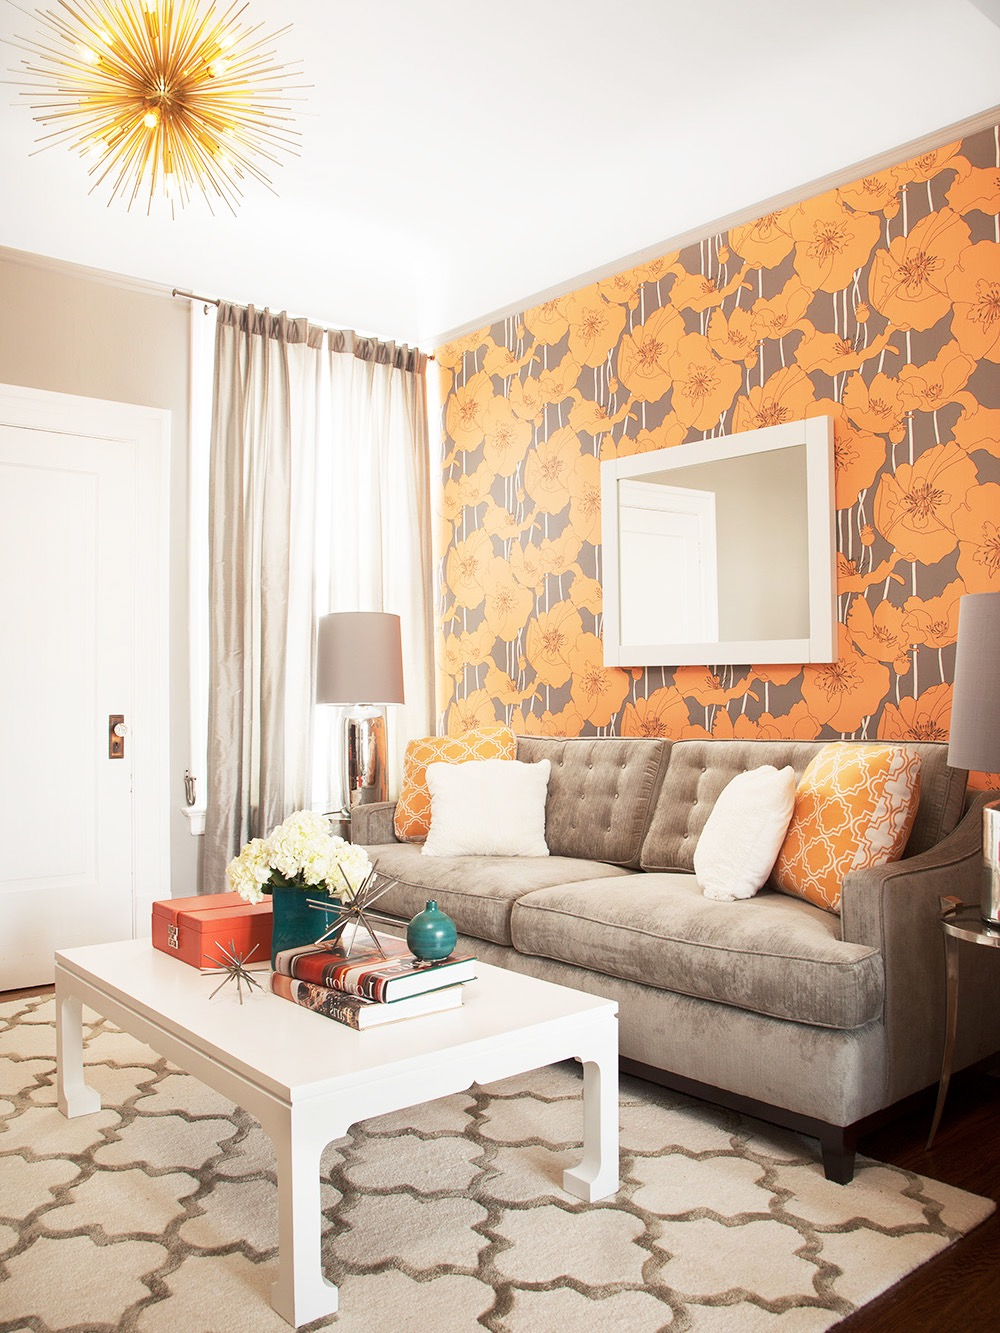 Contemporary Moroccan Inspired Living Room With Neutral Sofa And Bold Floral Wallpaper (View 19 of 25)